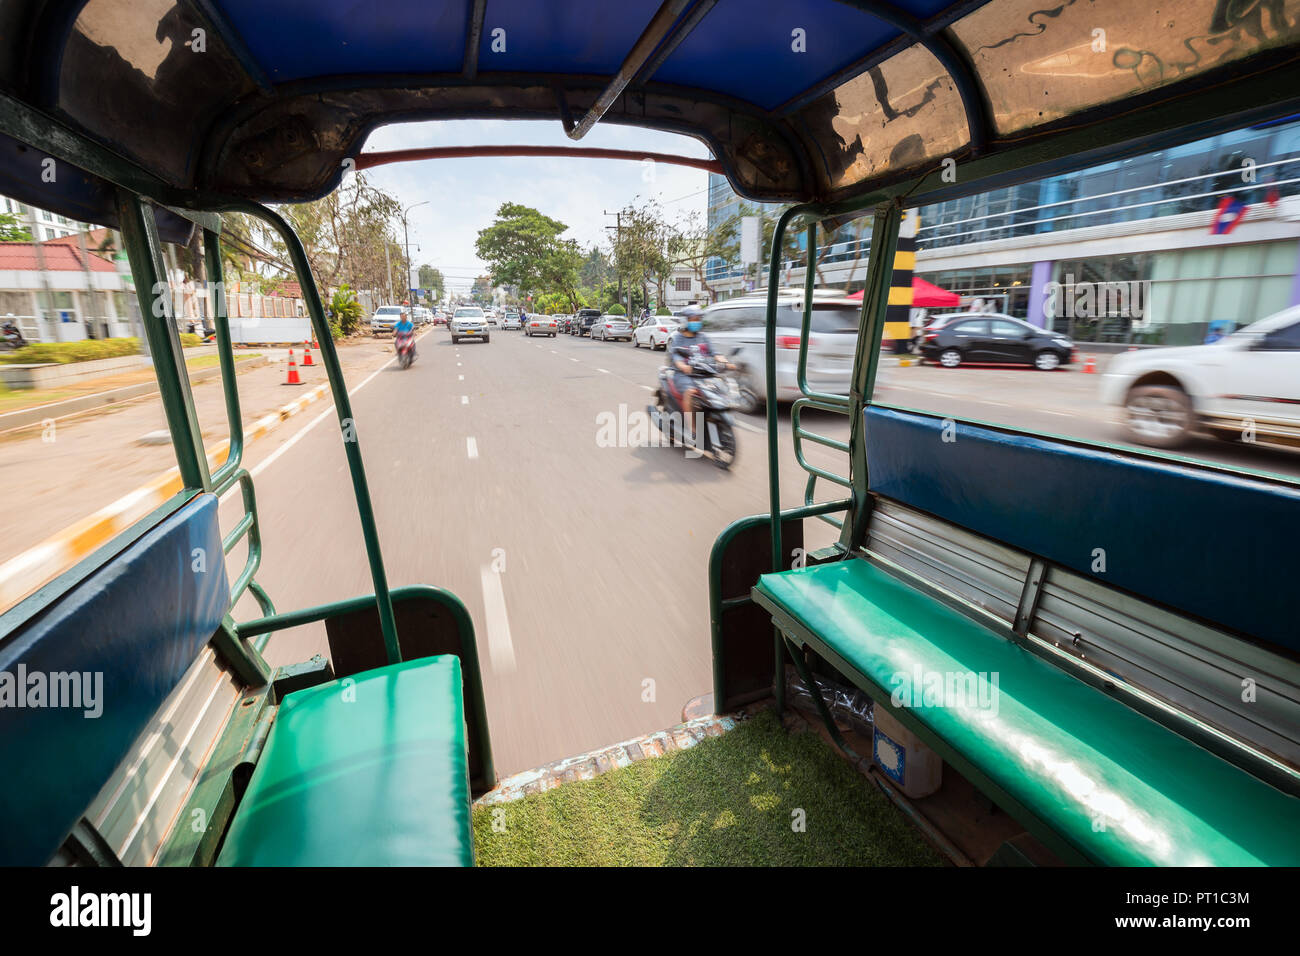 View of traffic on a street from the back of a songthaew (pick-up or small truck with benches along the sides) in Vientiane, Laos, on a sunny day. - Stock Image